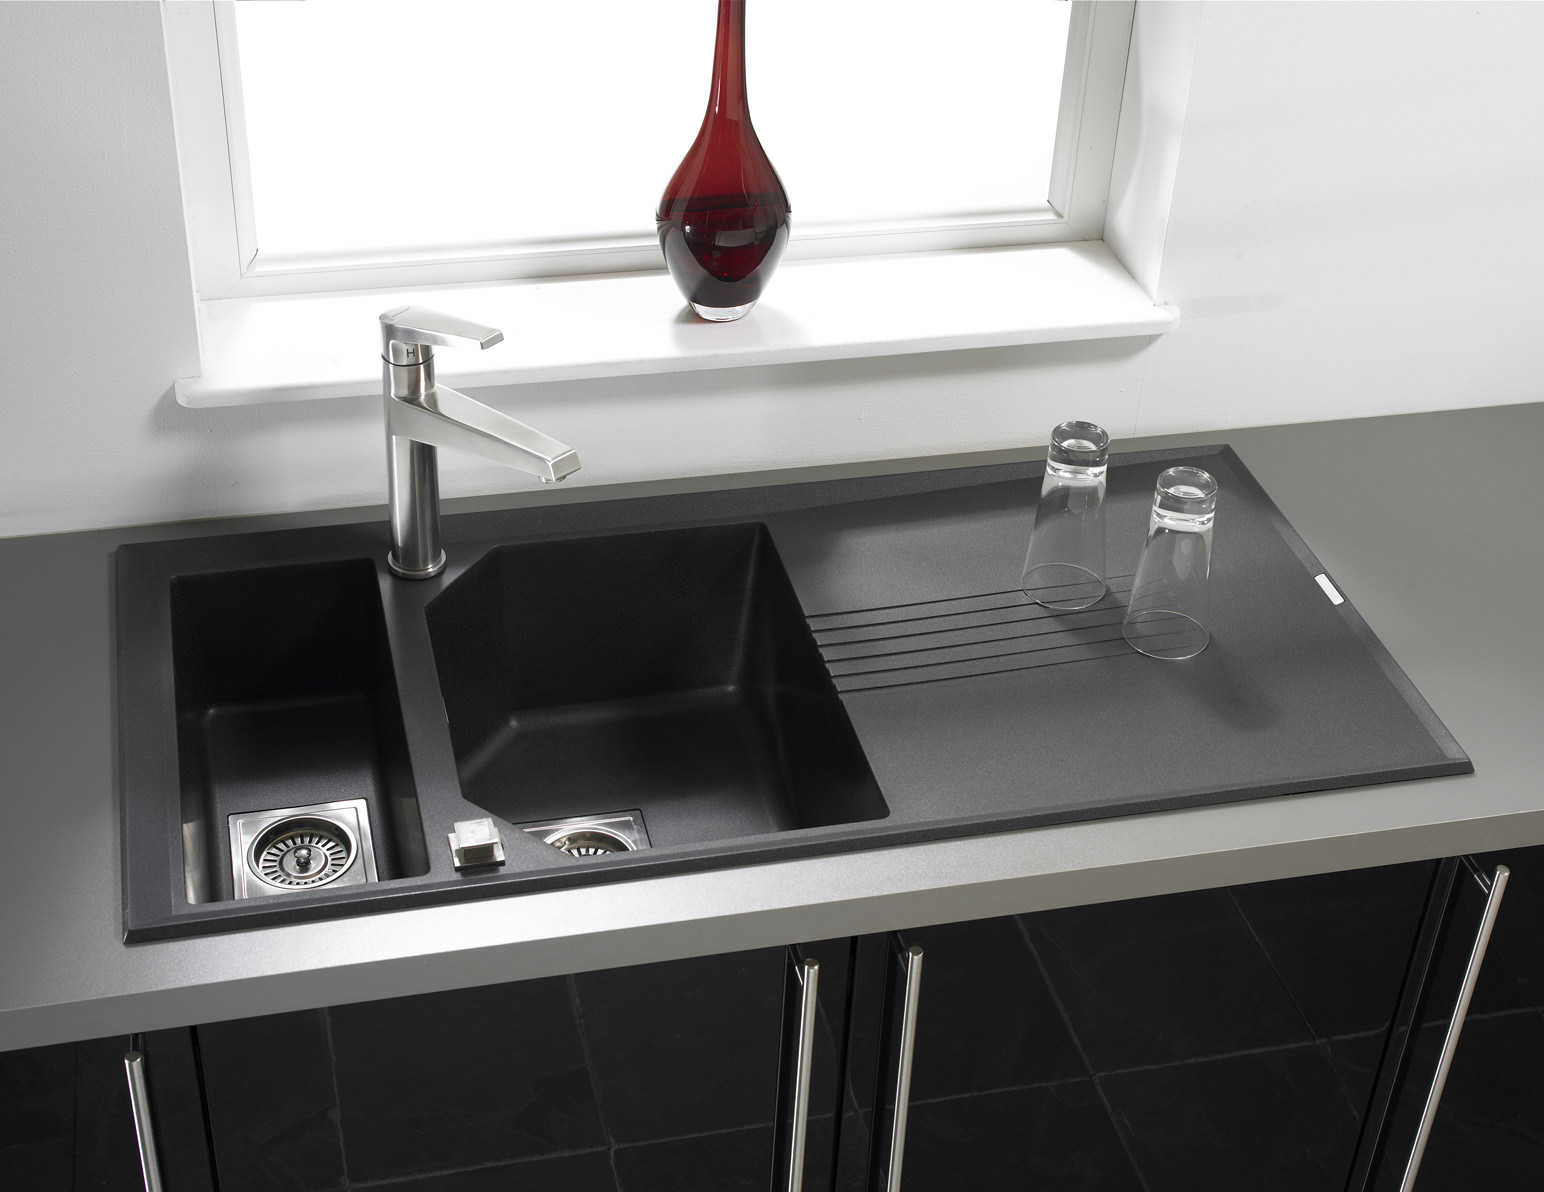 ... image of Astracast Helix 1.5 Bowl Composite ROK Metallic Inset Sink